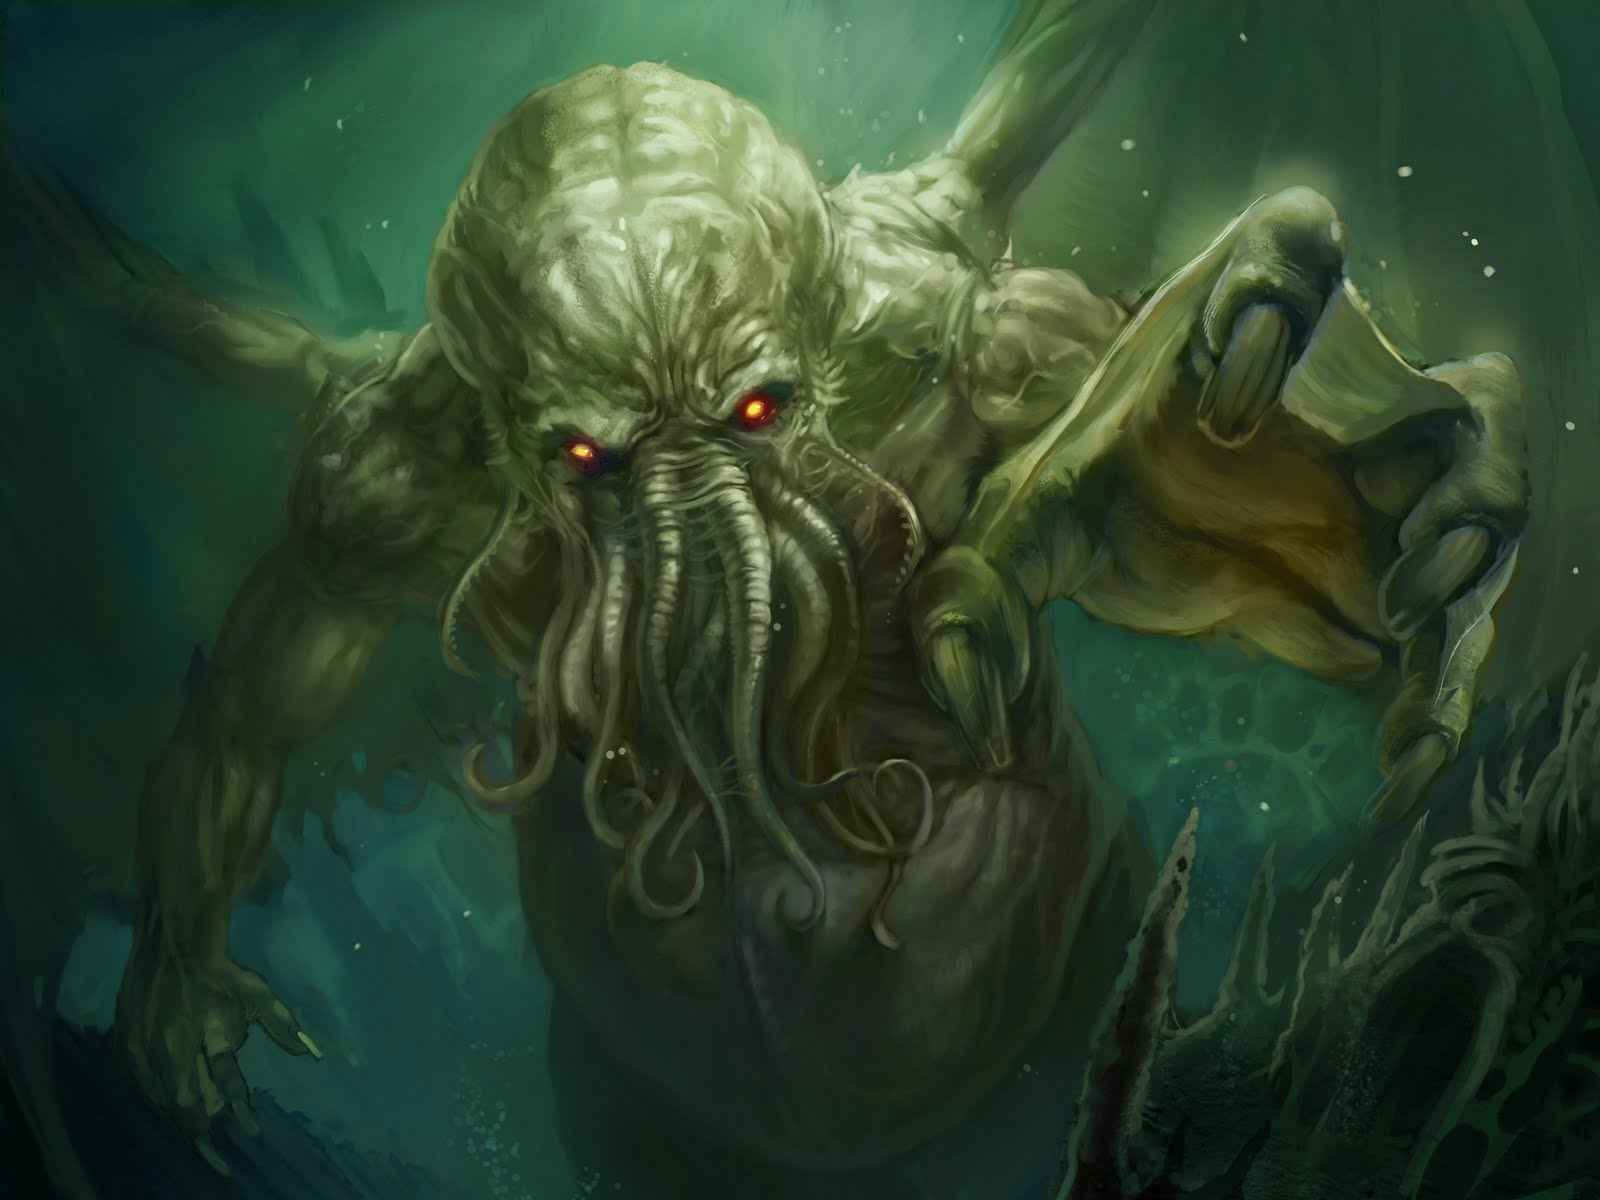 Not One To Be Left Out Of The Action Fans Mythic Tyrant Cthulhu Have Named Teeny Tiny New Creatures After Their Larger Than Life Progenitor